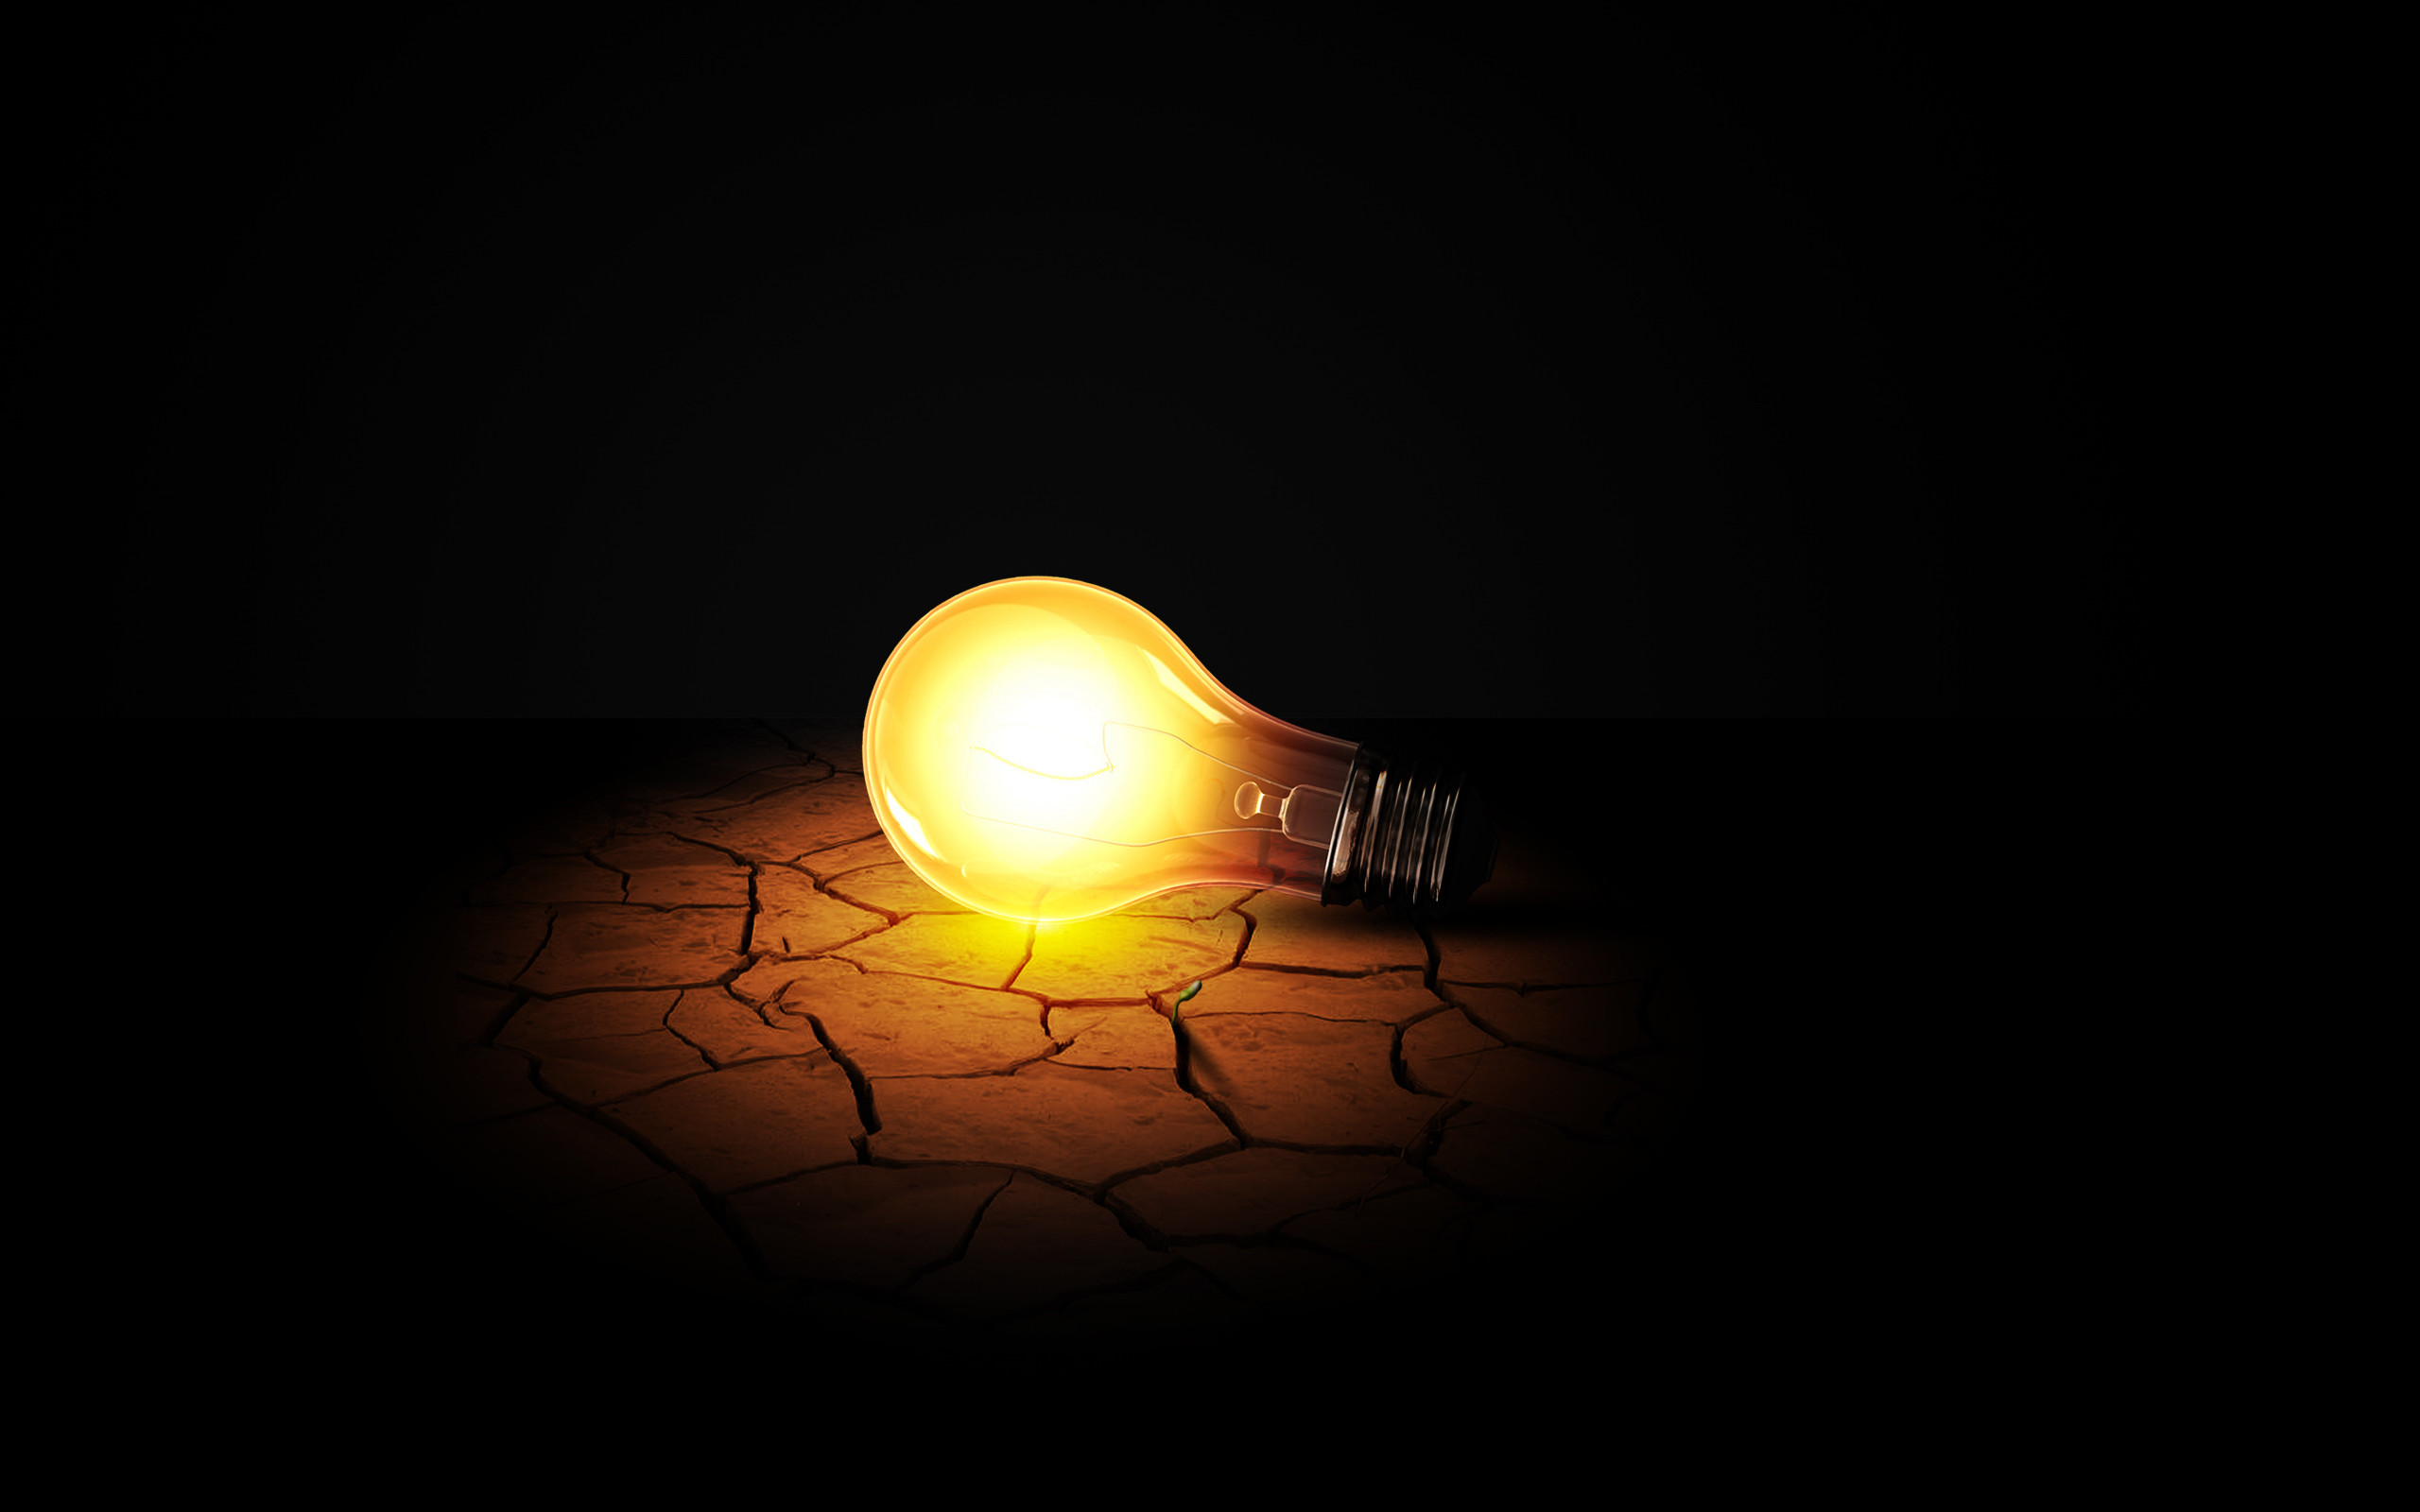 2560x1600 Man Made - Light Bulb Lamp Plant Life Earth Ground Wallpaper